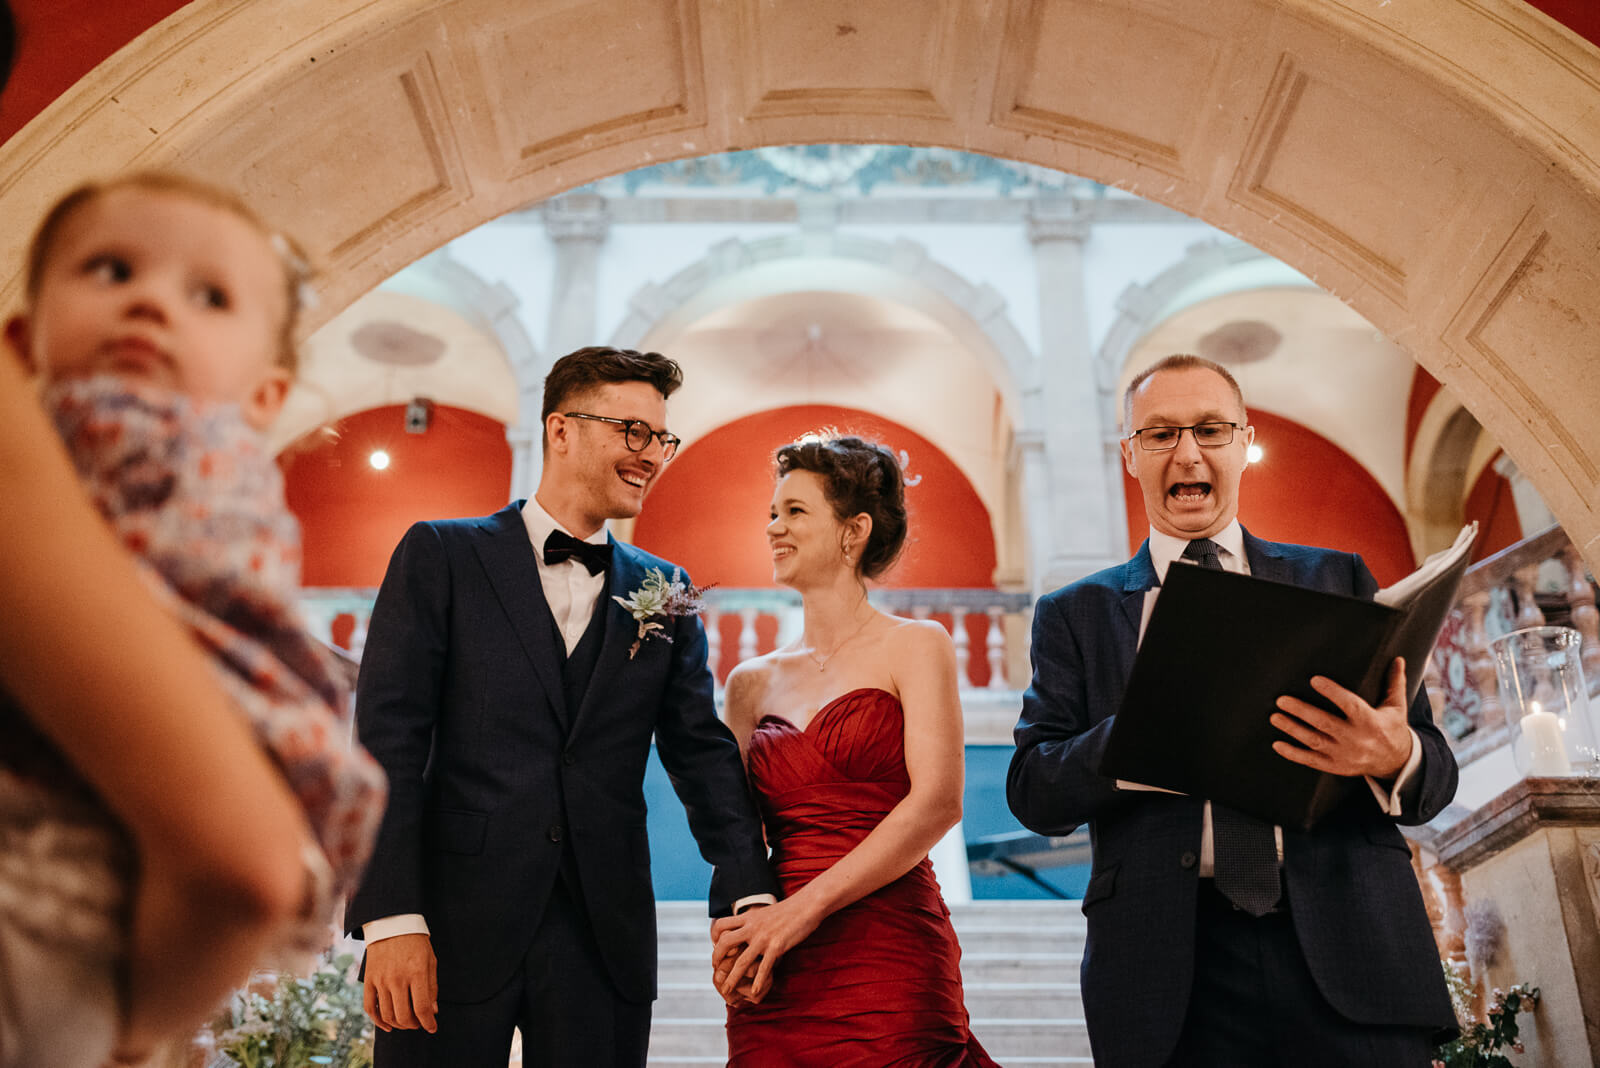 bride and groom share a moment of laughter during their ceremony at Battersea Arts Centre